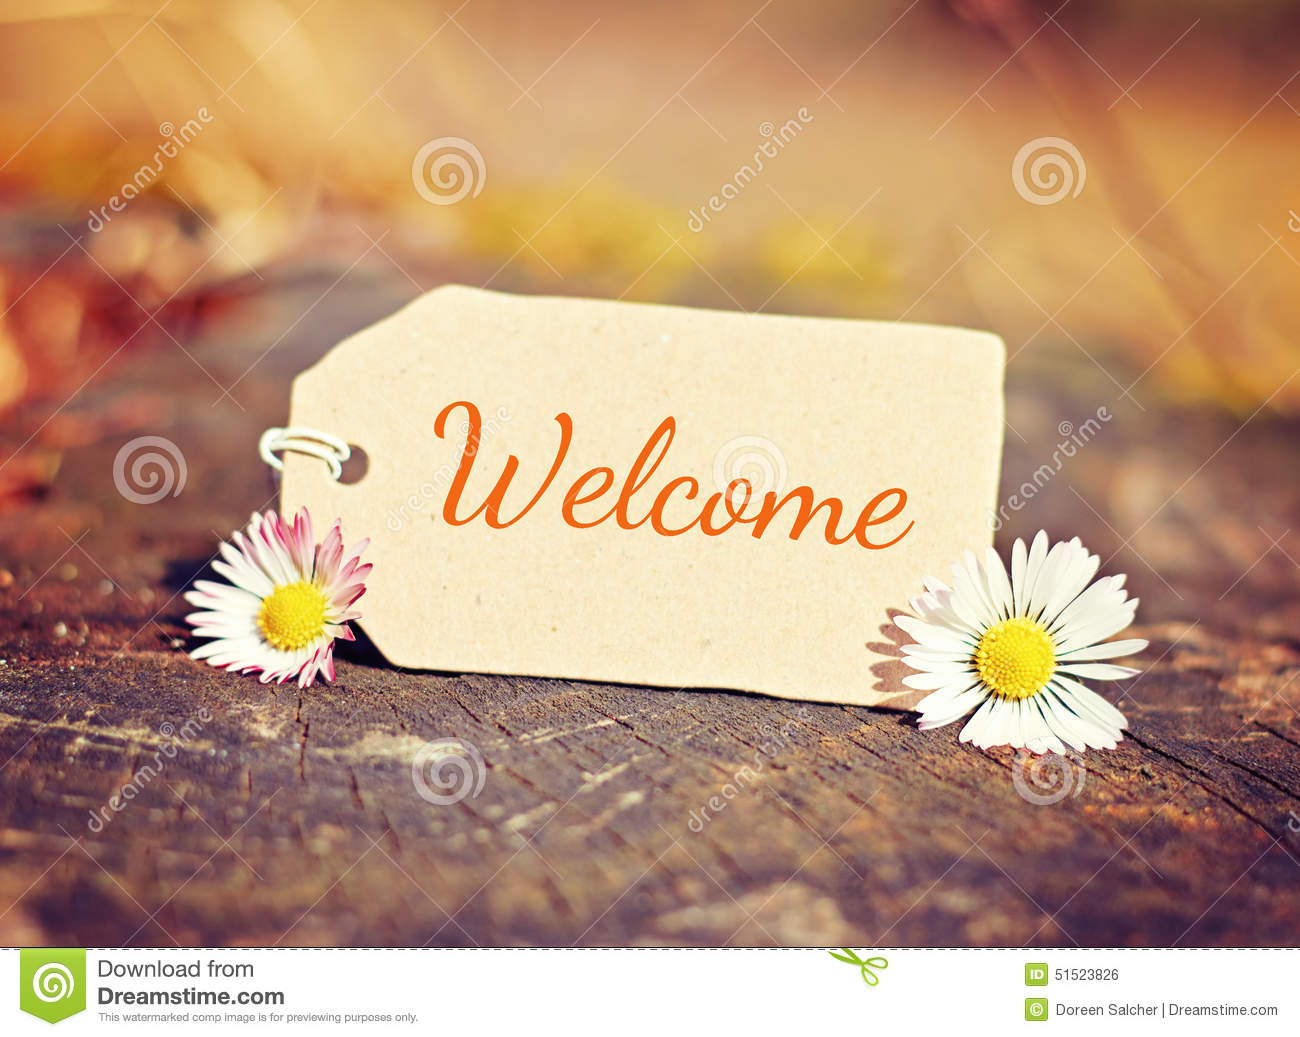 background-welcome-outdoor-greeting-card-text-51523826.jpg